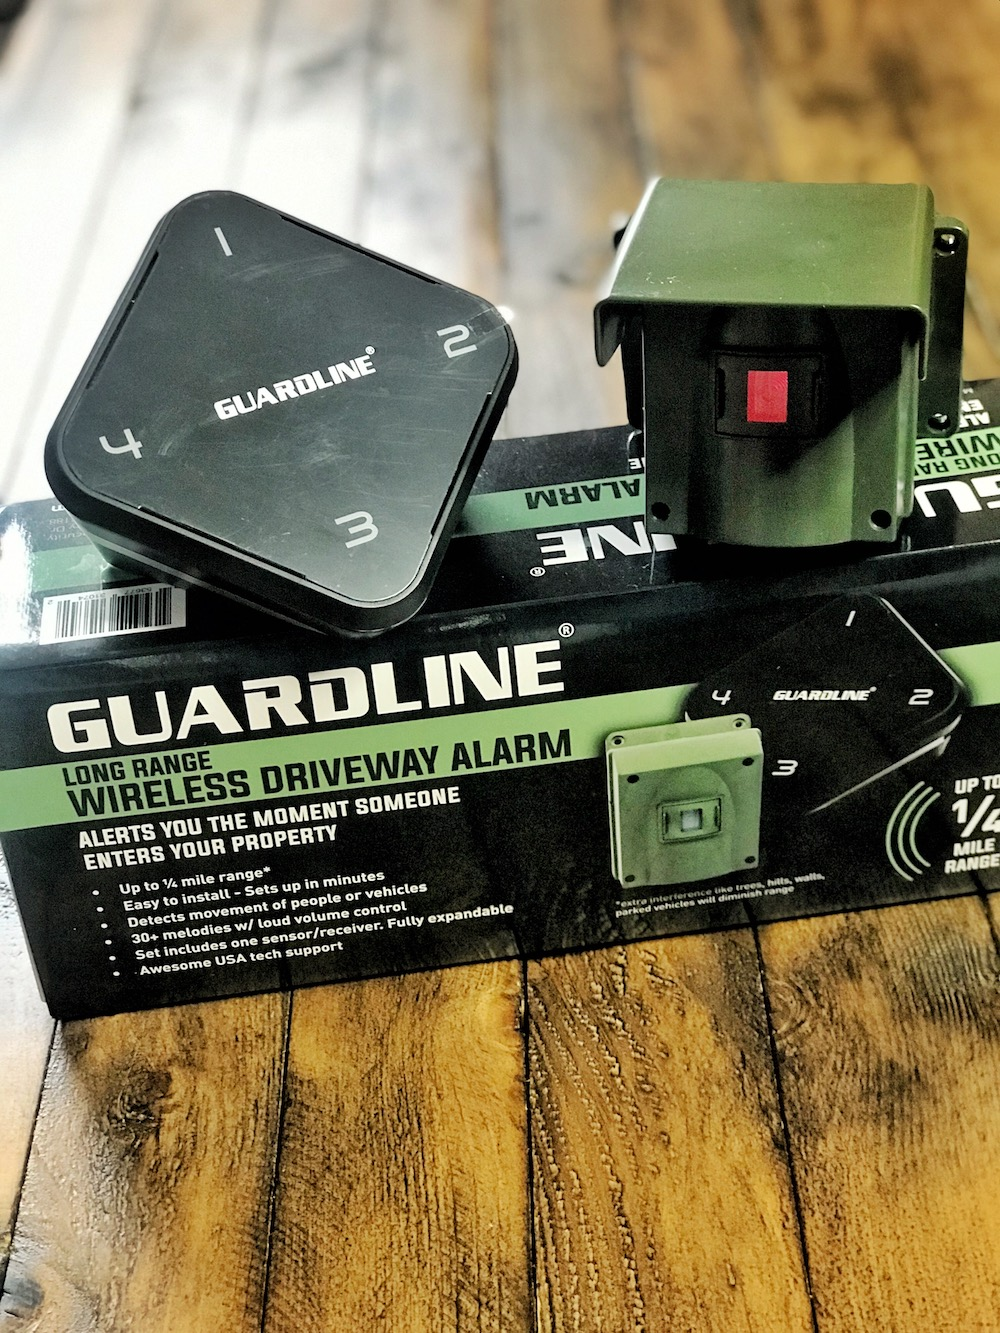 Guardline product and box